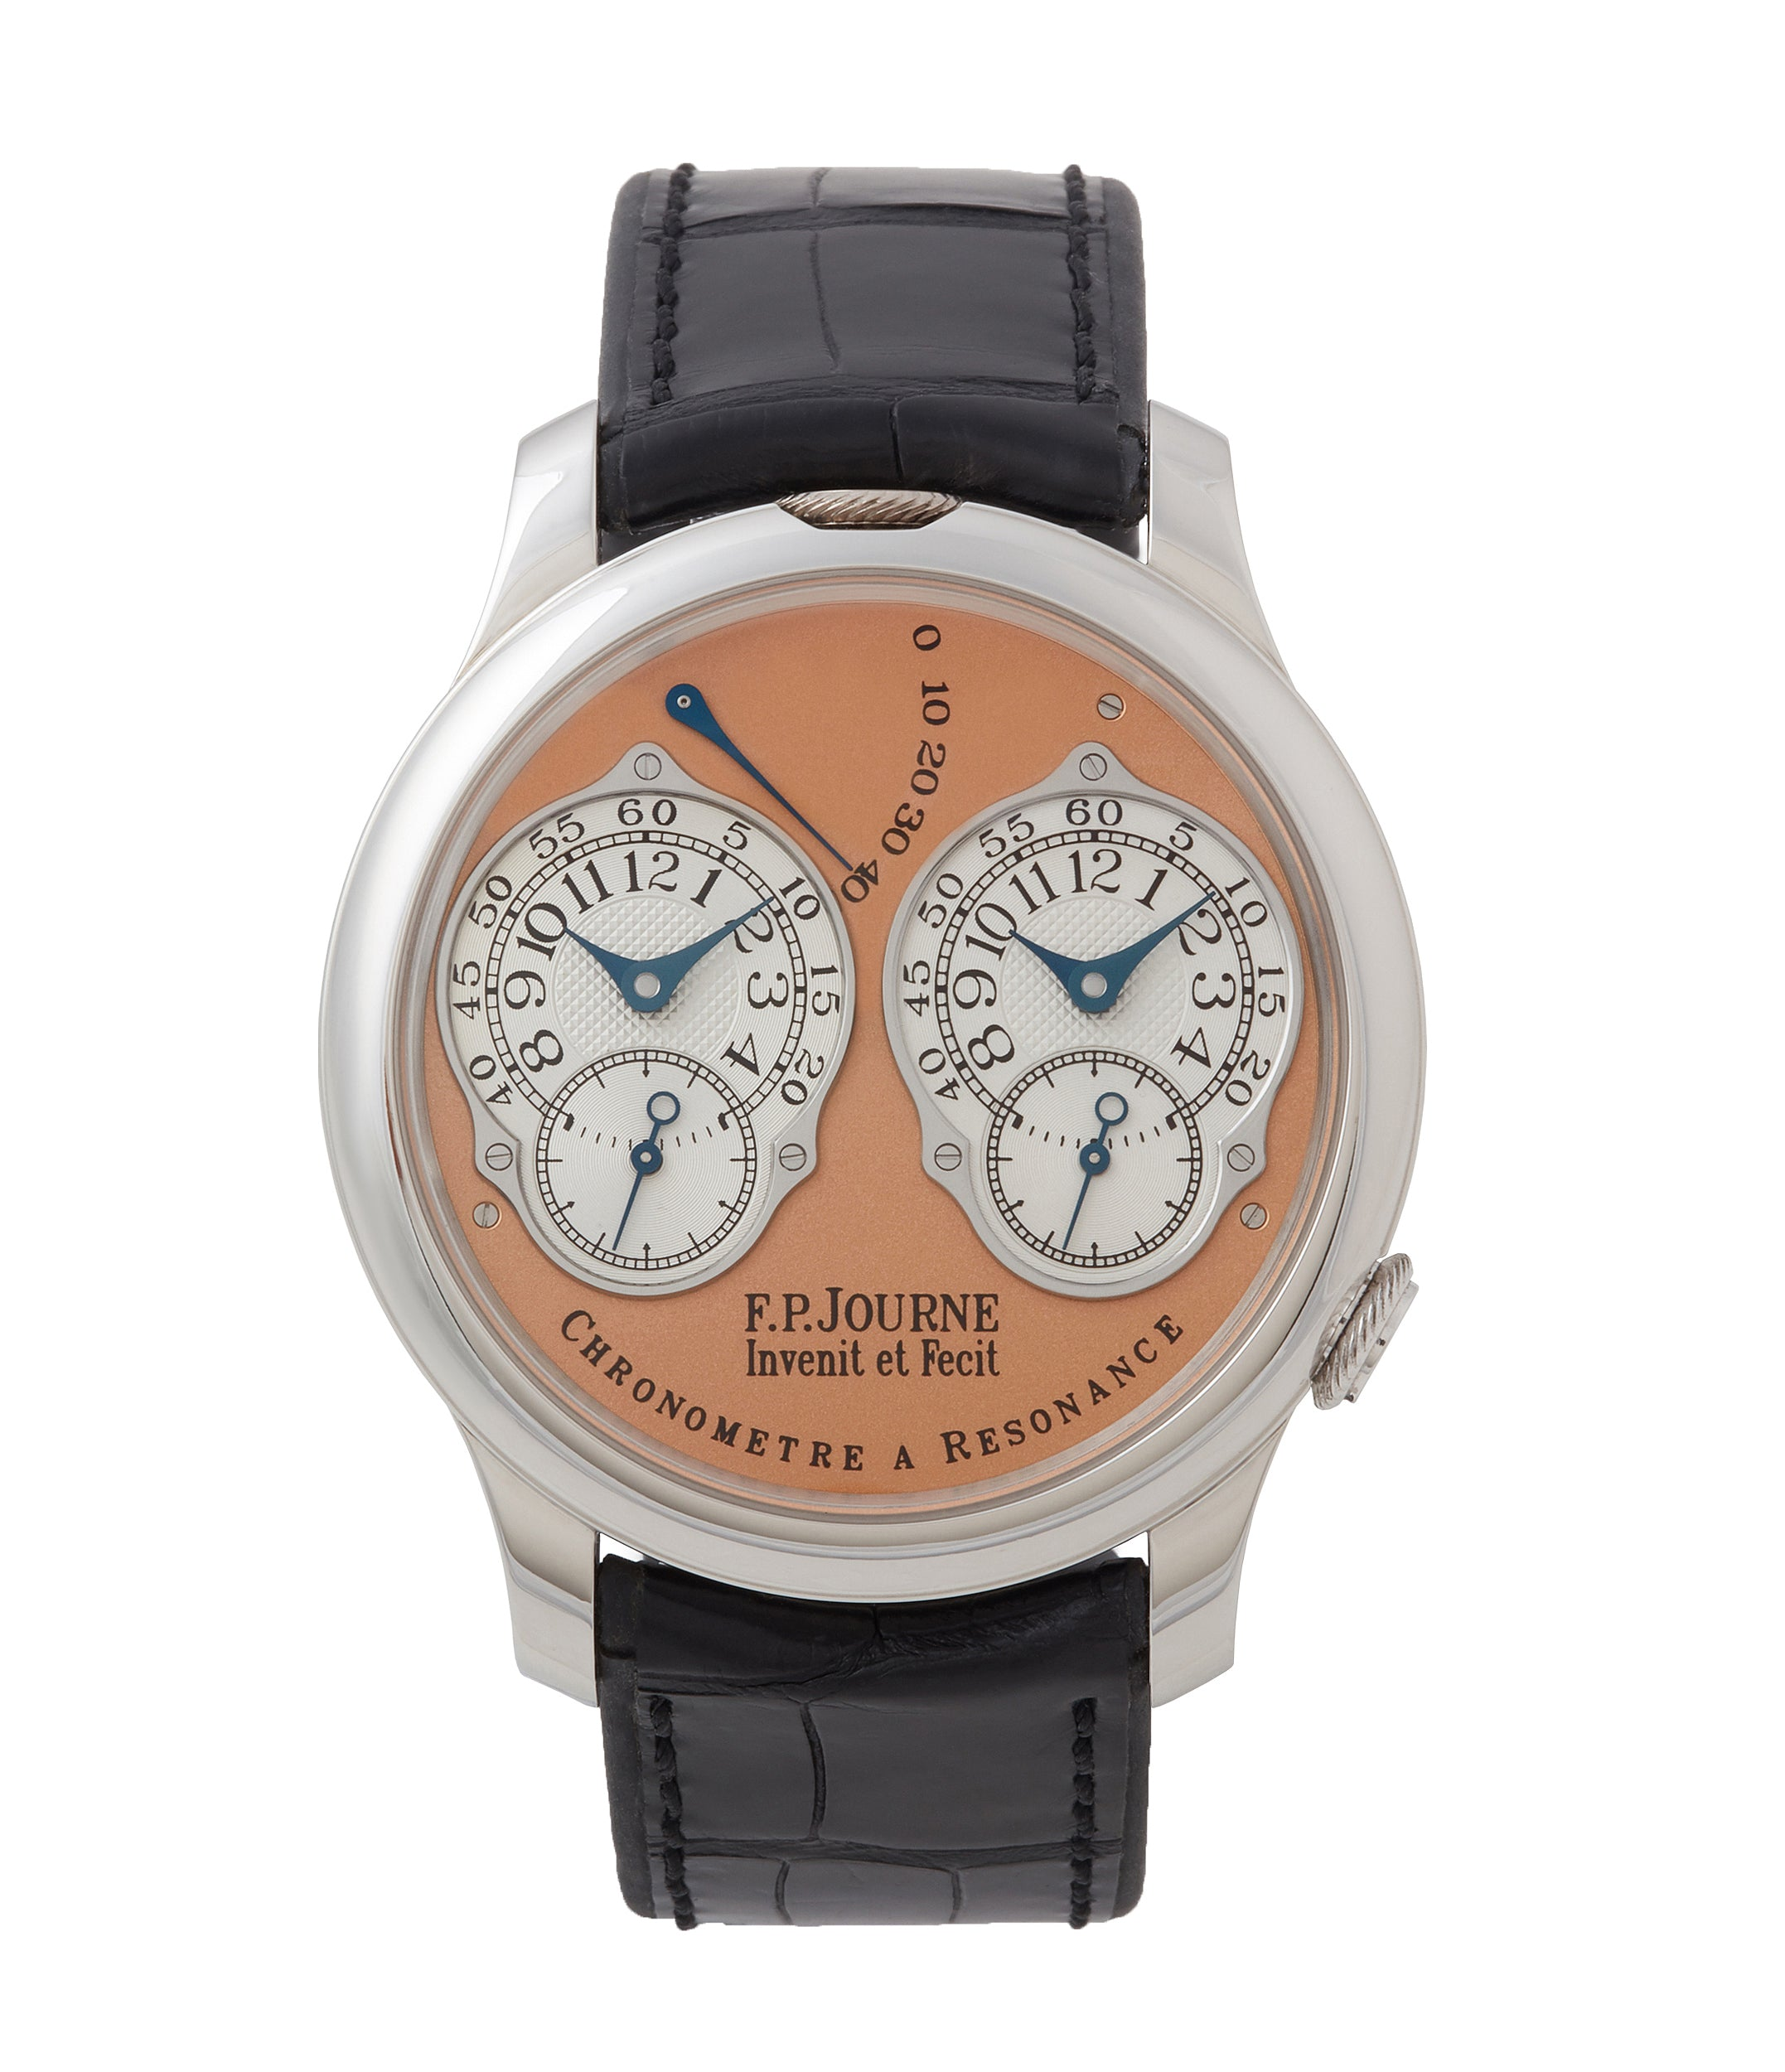 buy F. P. Journe Chronometre a Resonance platinum watch gold movement for sale online at A Collected Man London Uk specialist of independent watchmakers